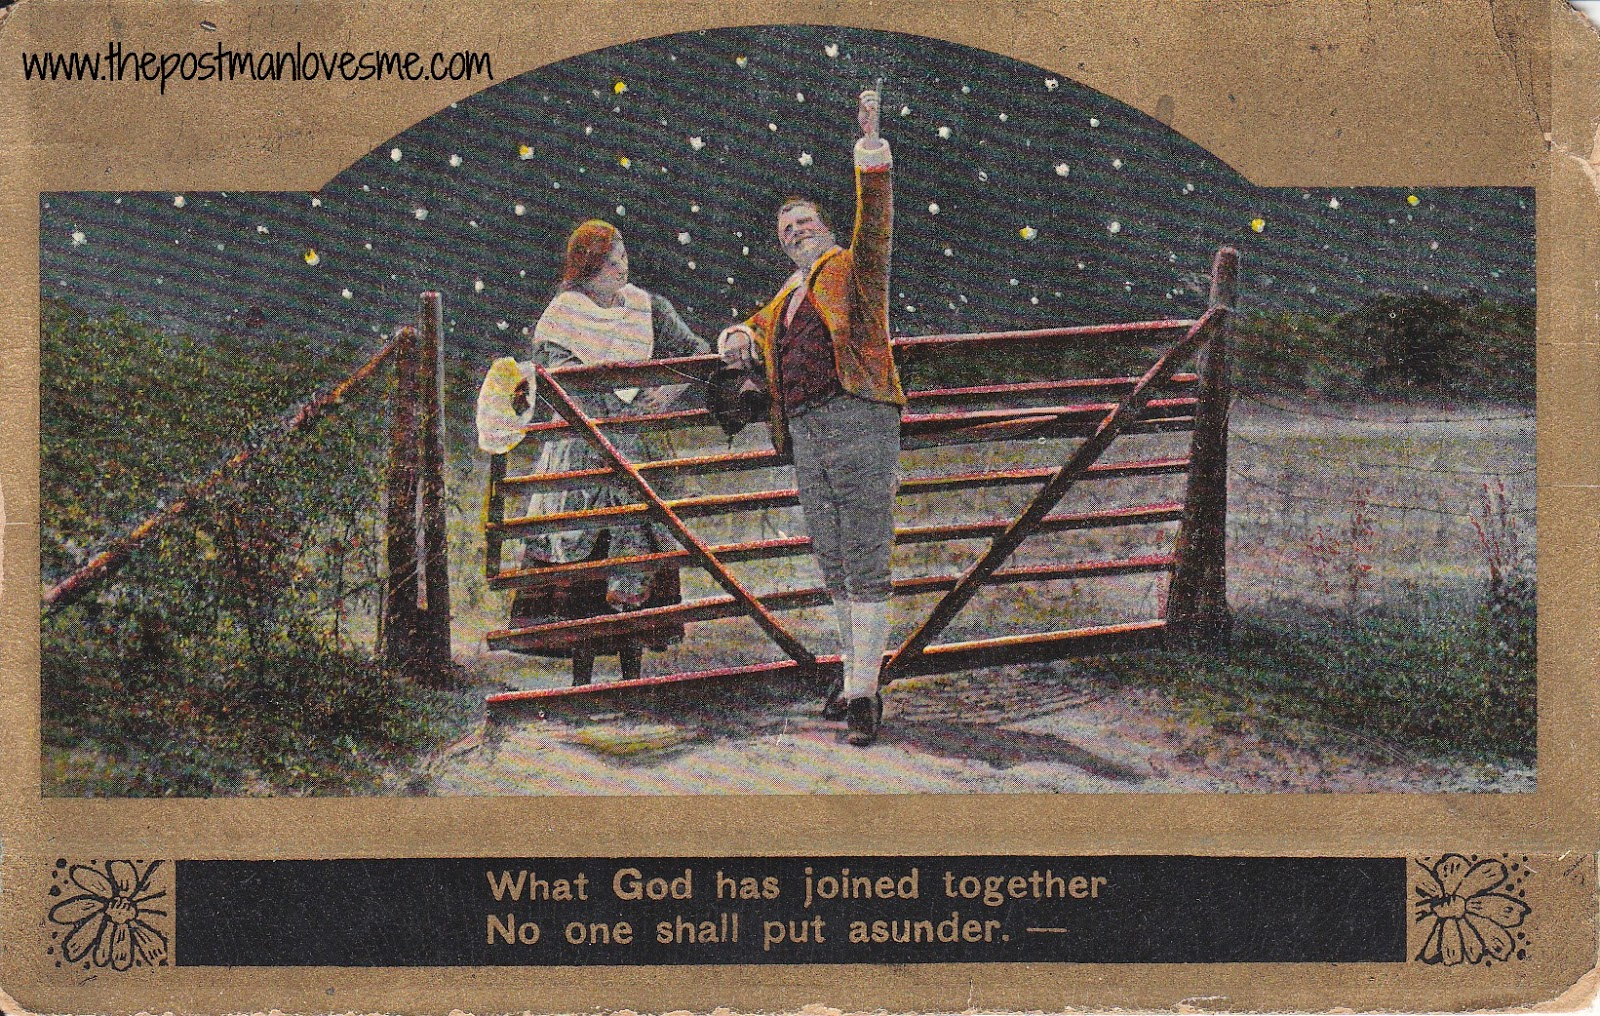 Romantic Vintage Postcard (1910s)